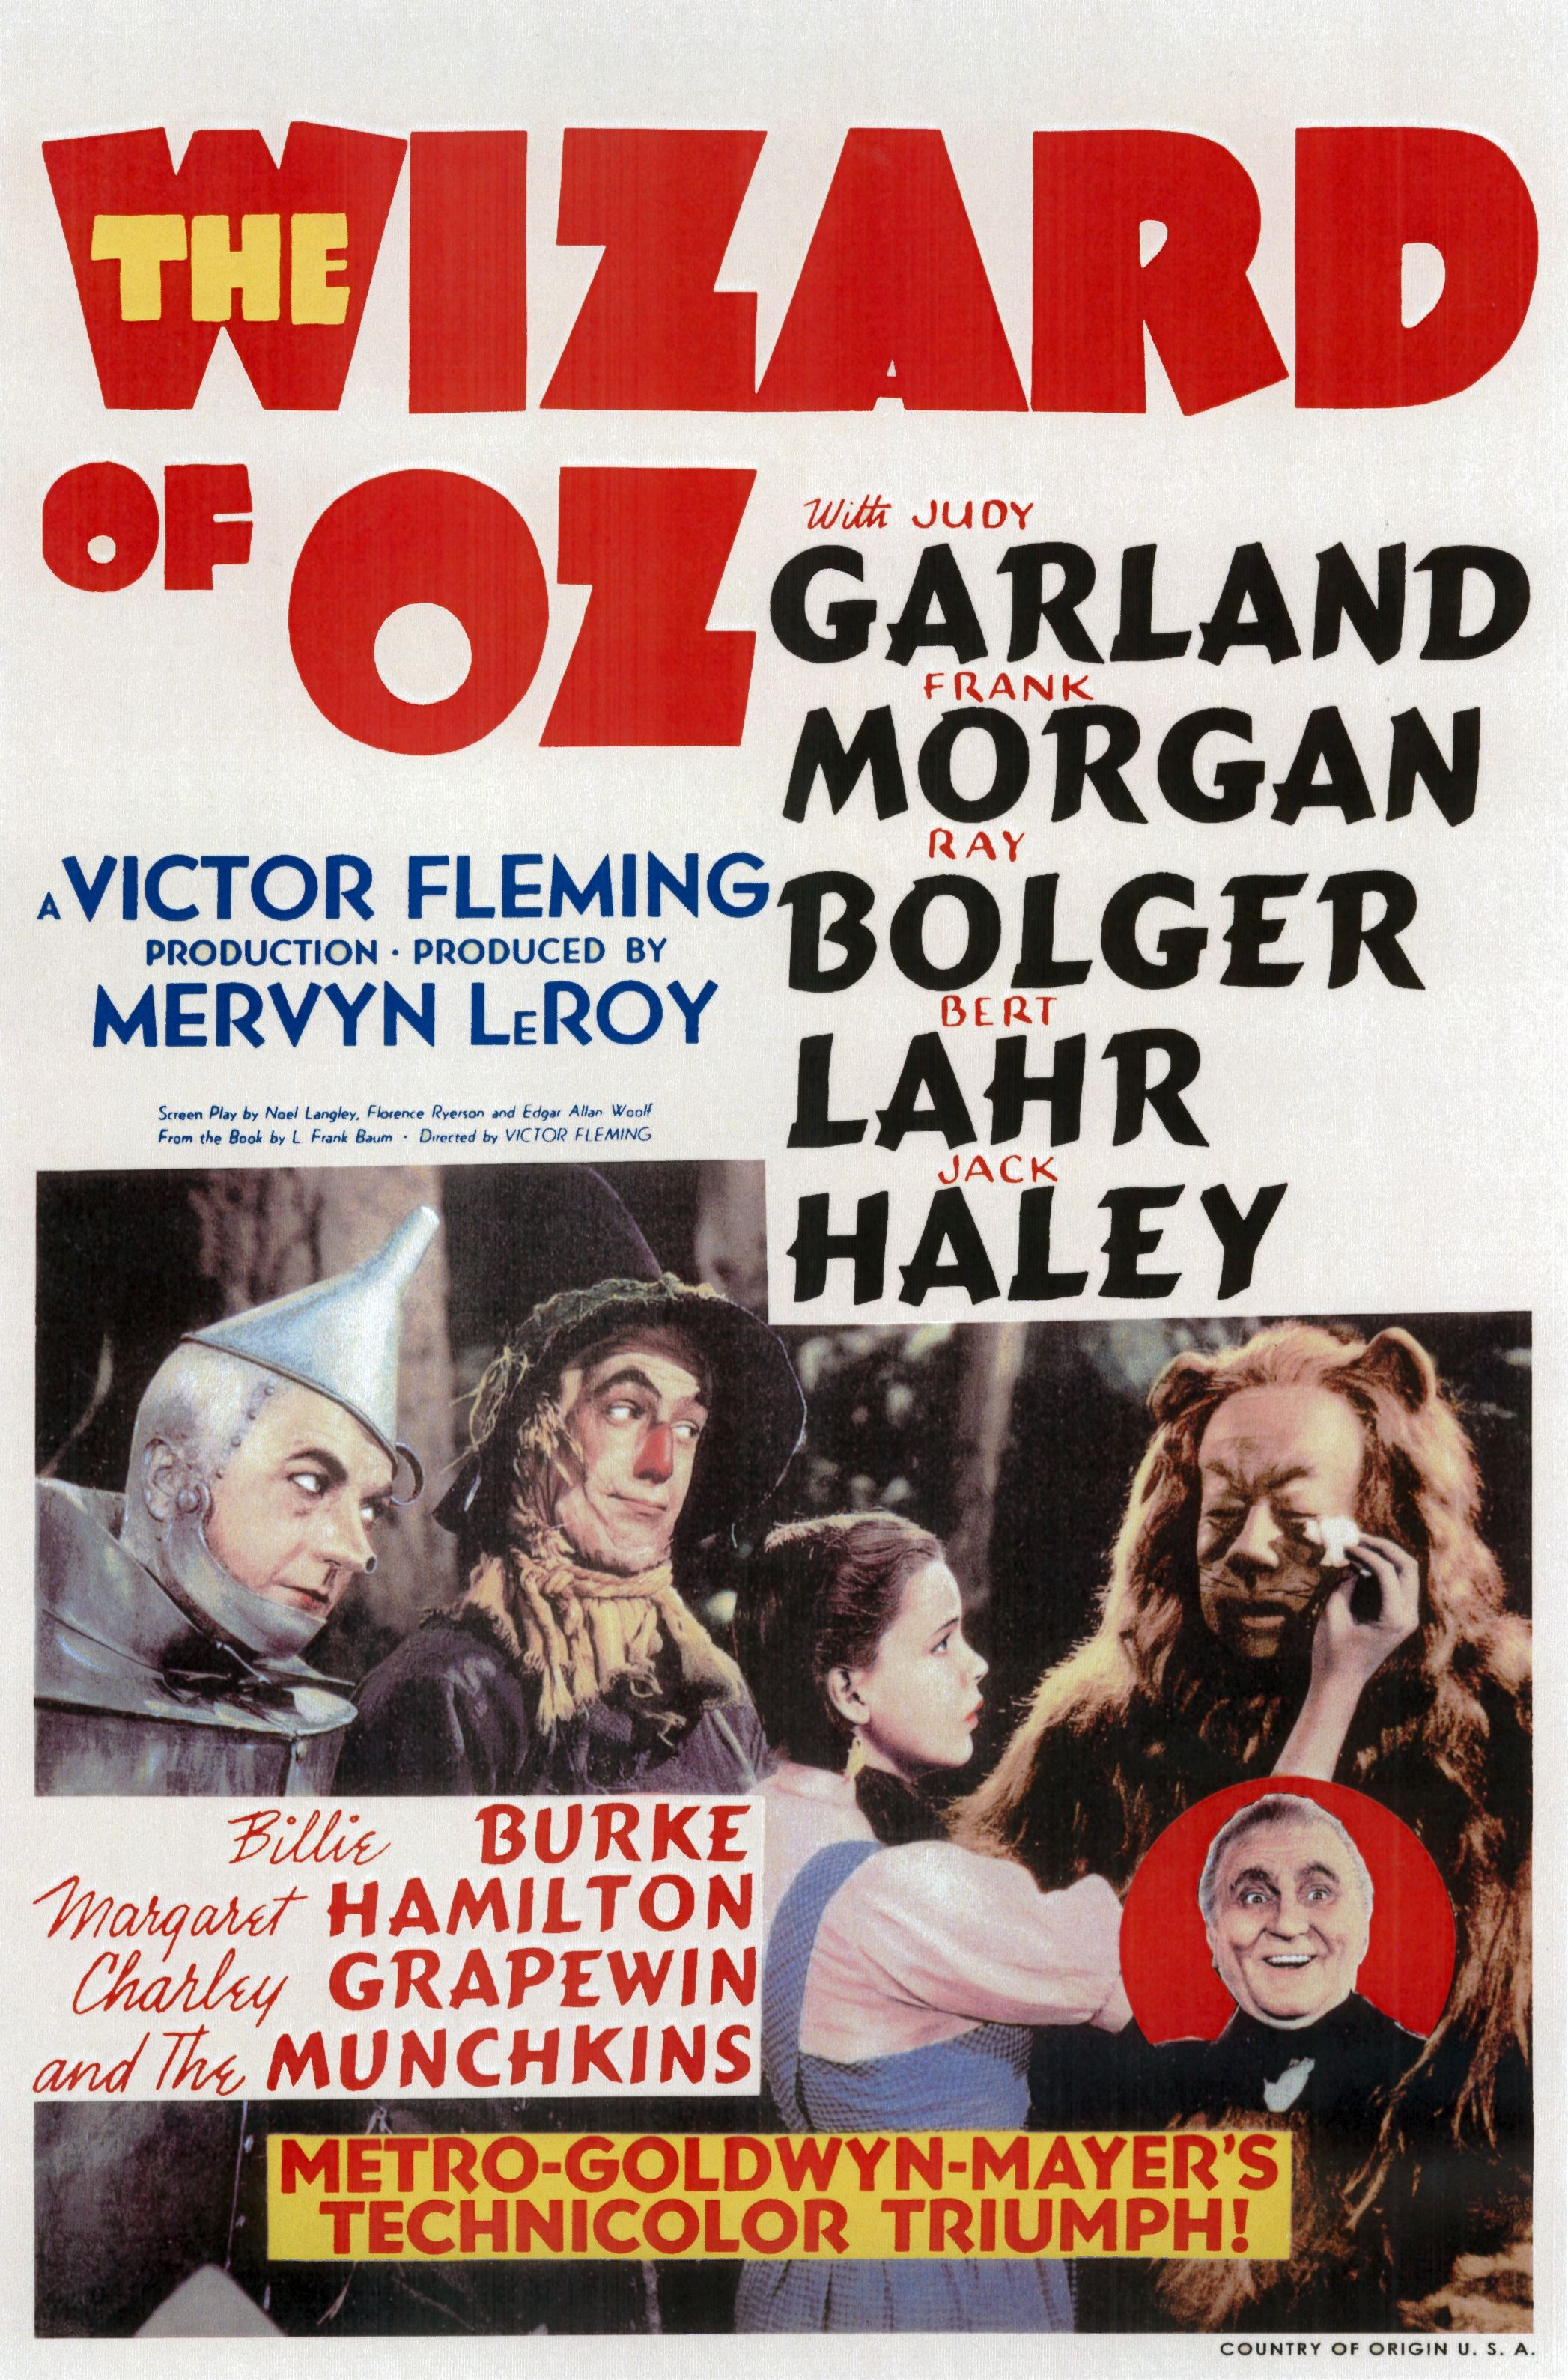 https://upload.wikimedia.org/wikipedia/commons/c/ca/WIZARD_OF_OZ_ORIGINAL_POSTER_1939.jpg